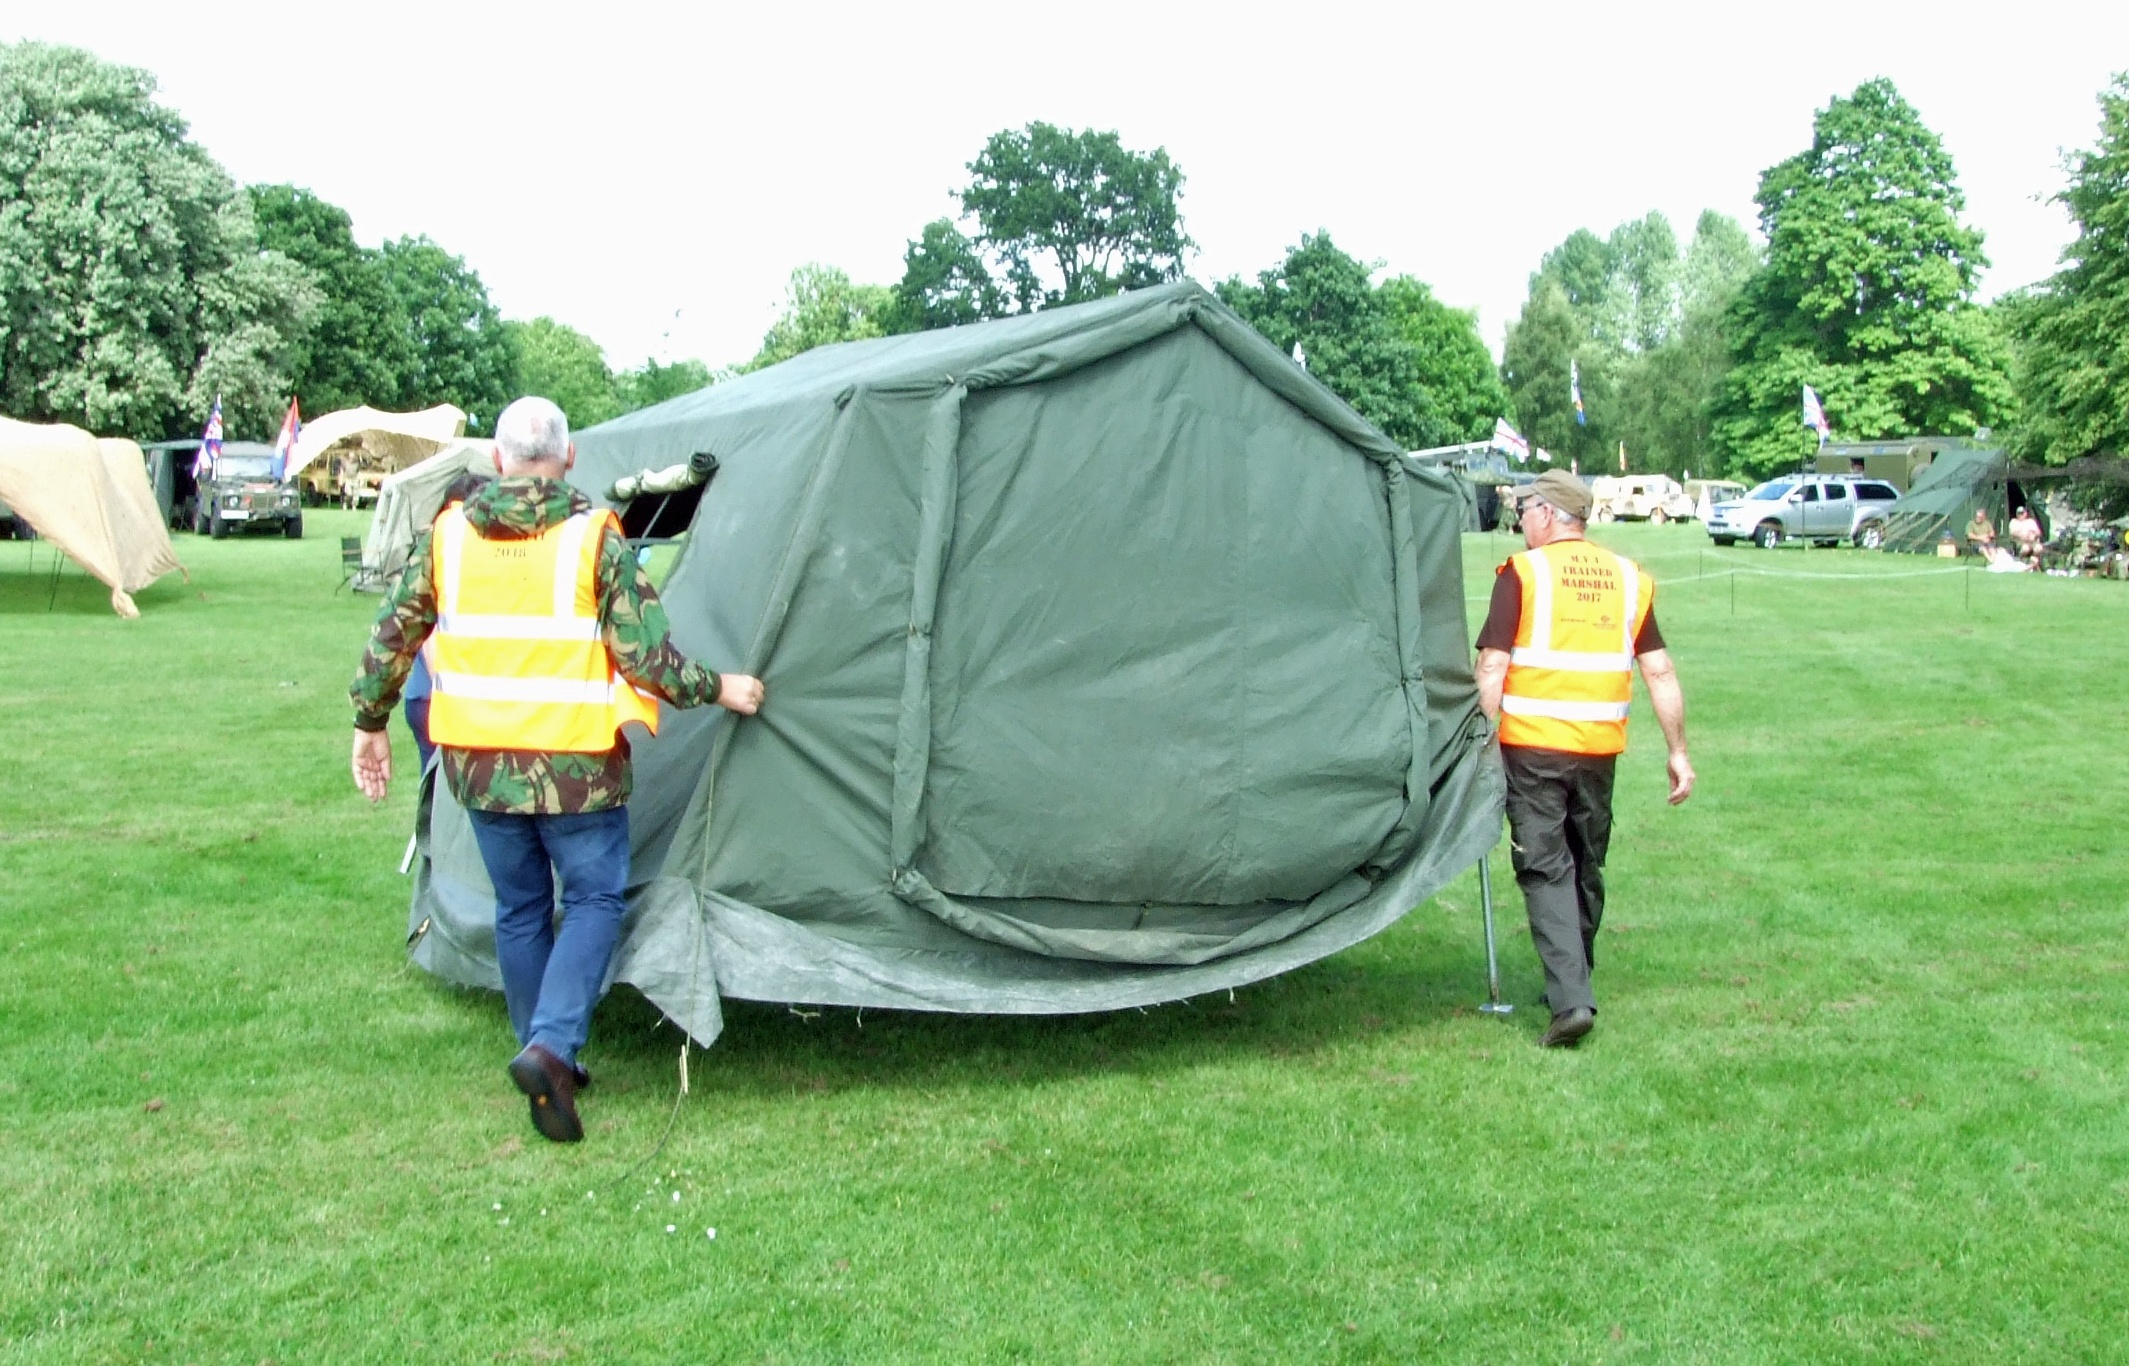 This tent was pitched in the wrong place,  so marshals walked it to a new site